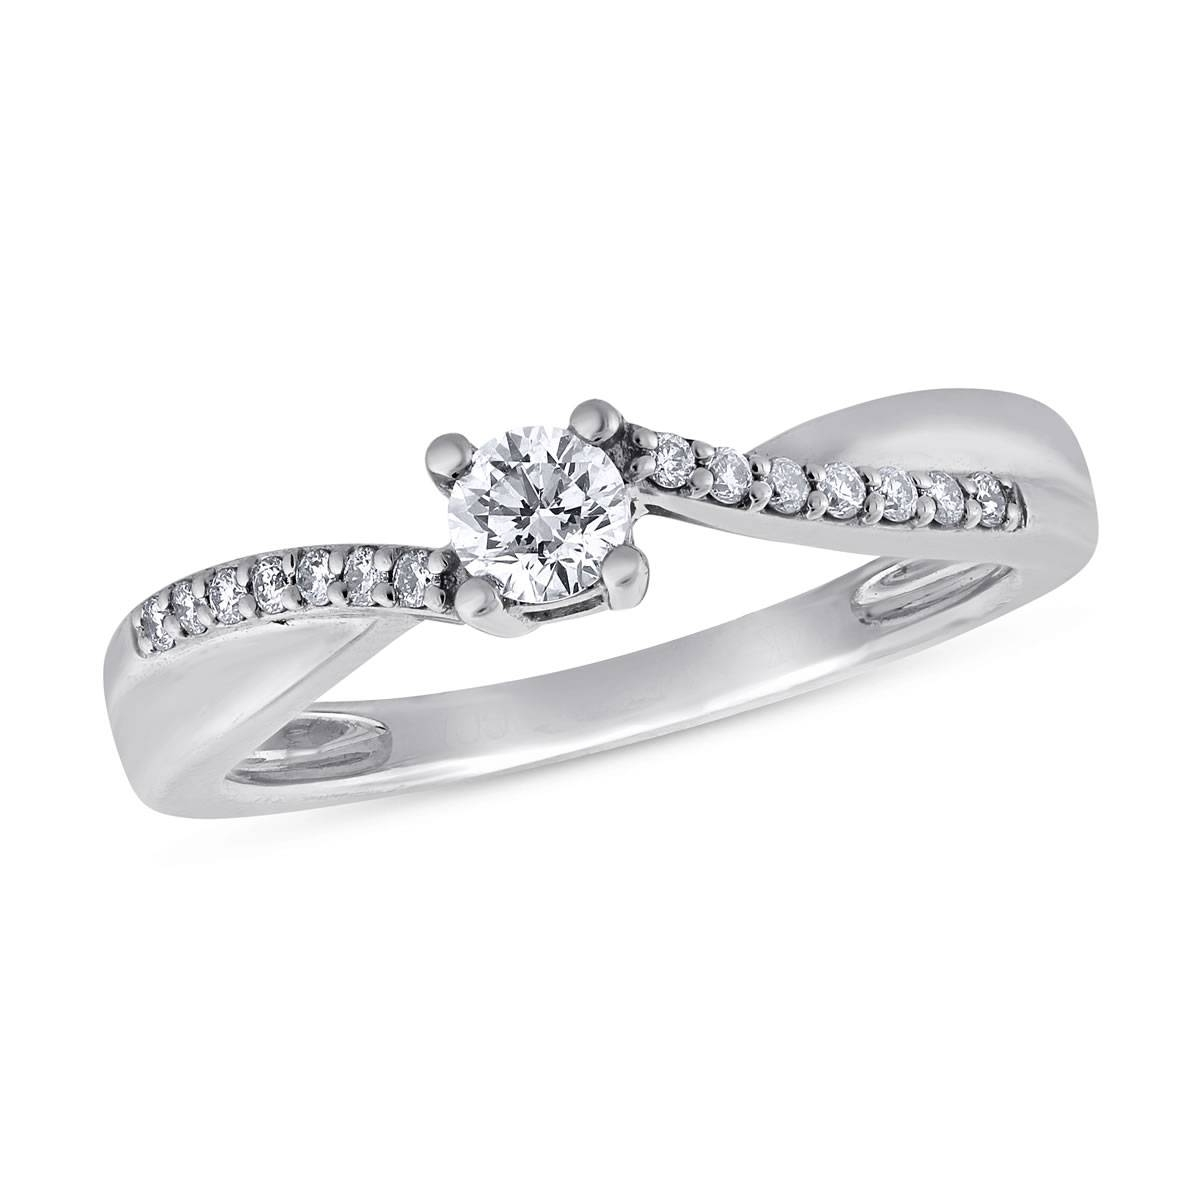 Calista, 1/3 Ctw Round Cut Diamond Engagement Ring In 14k White Intended For White Gold Engagement Rings (View 12 of 15)